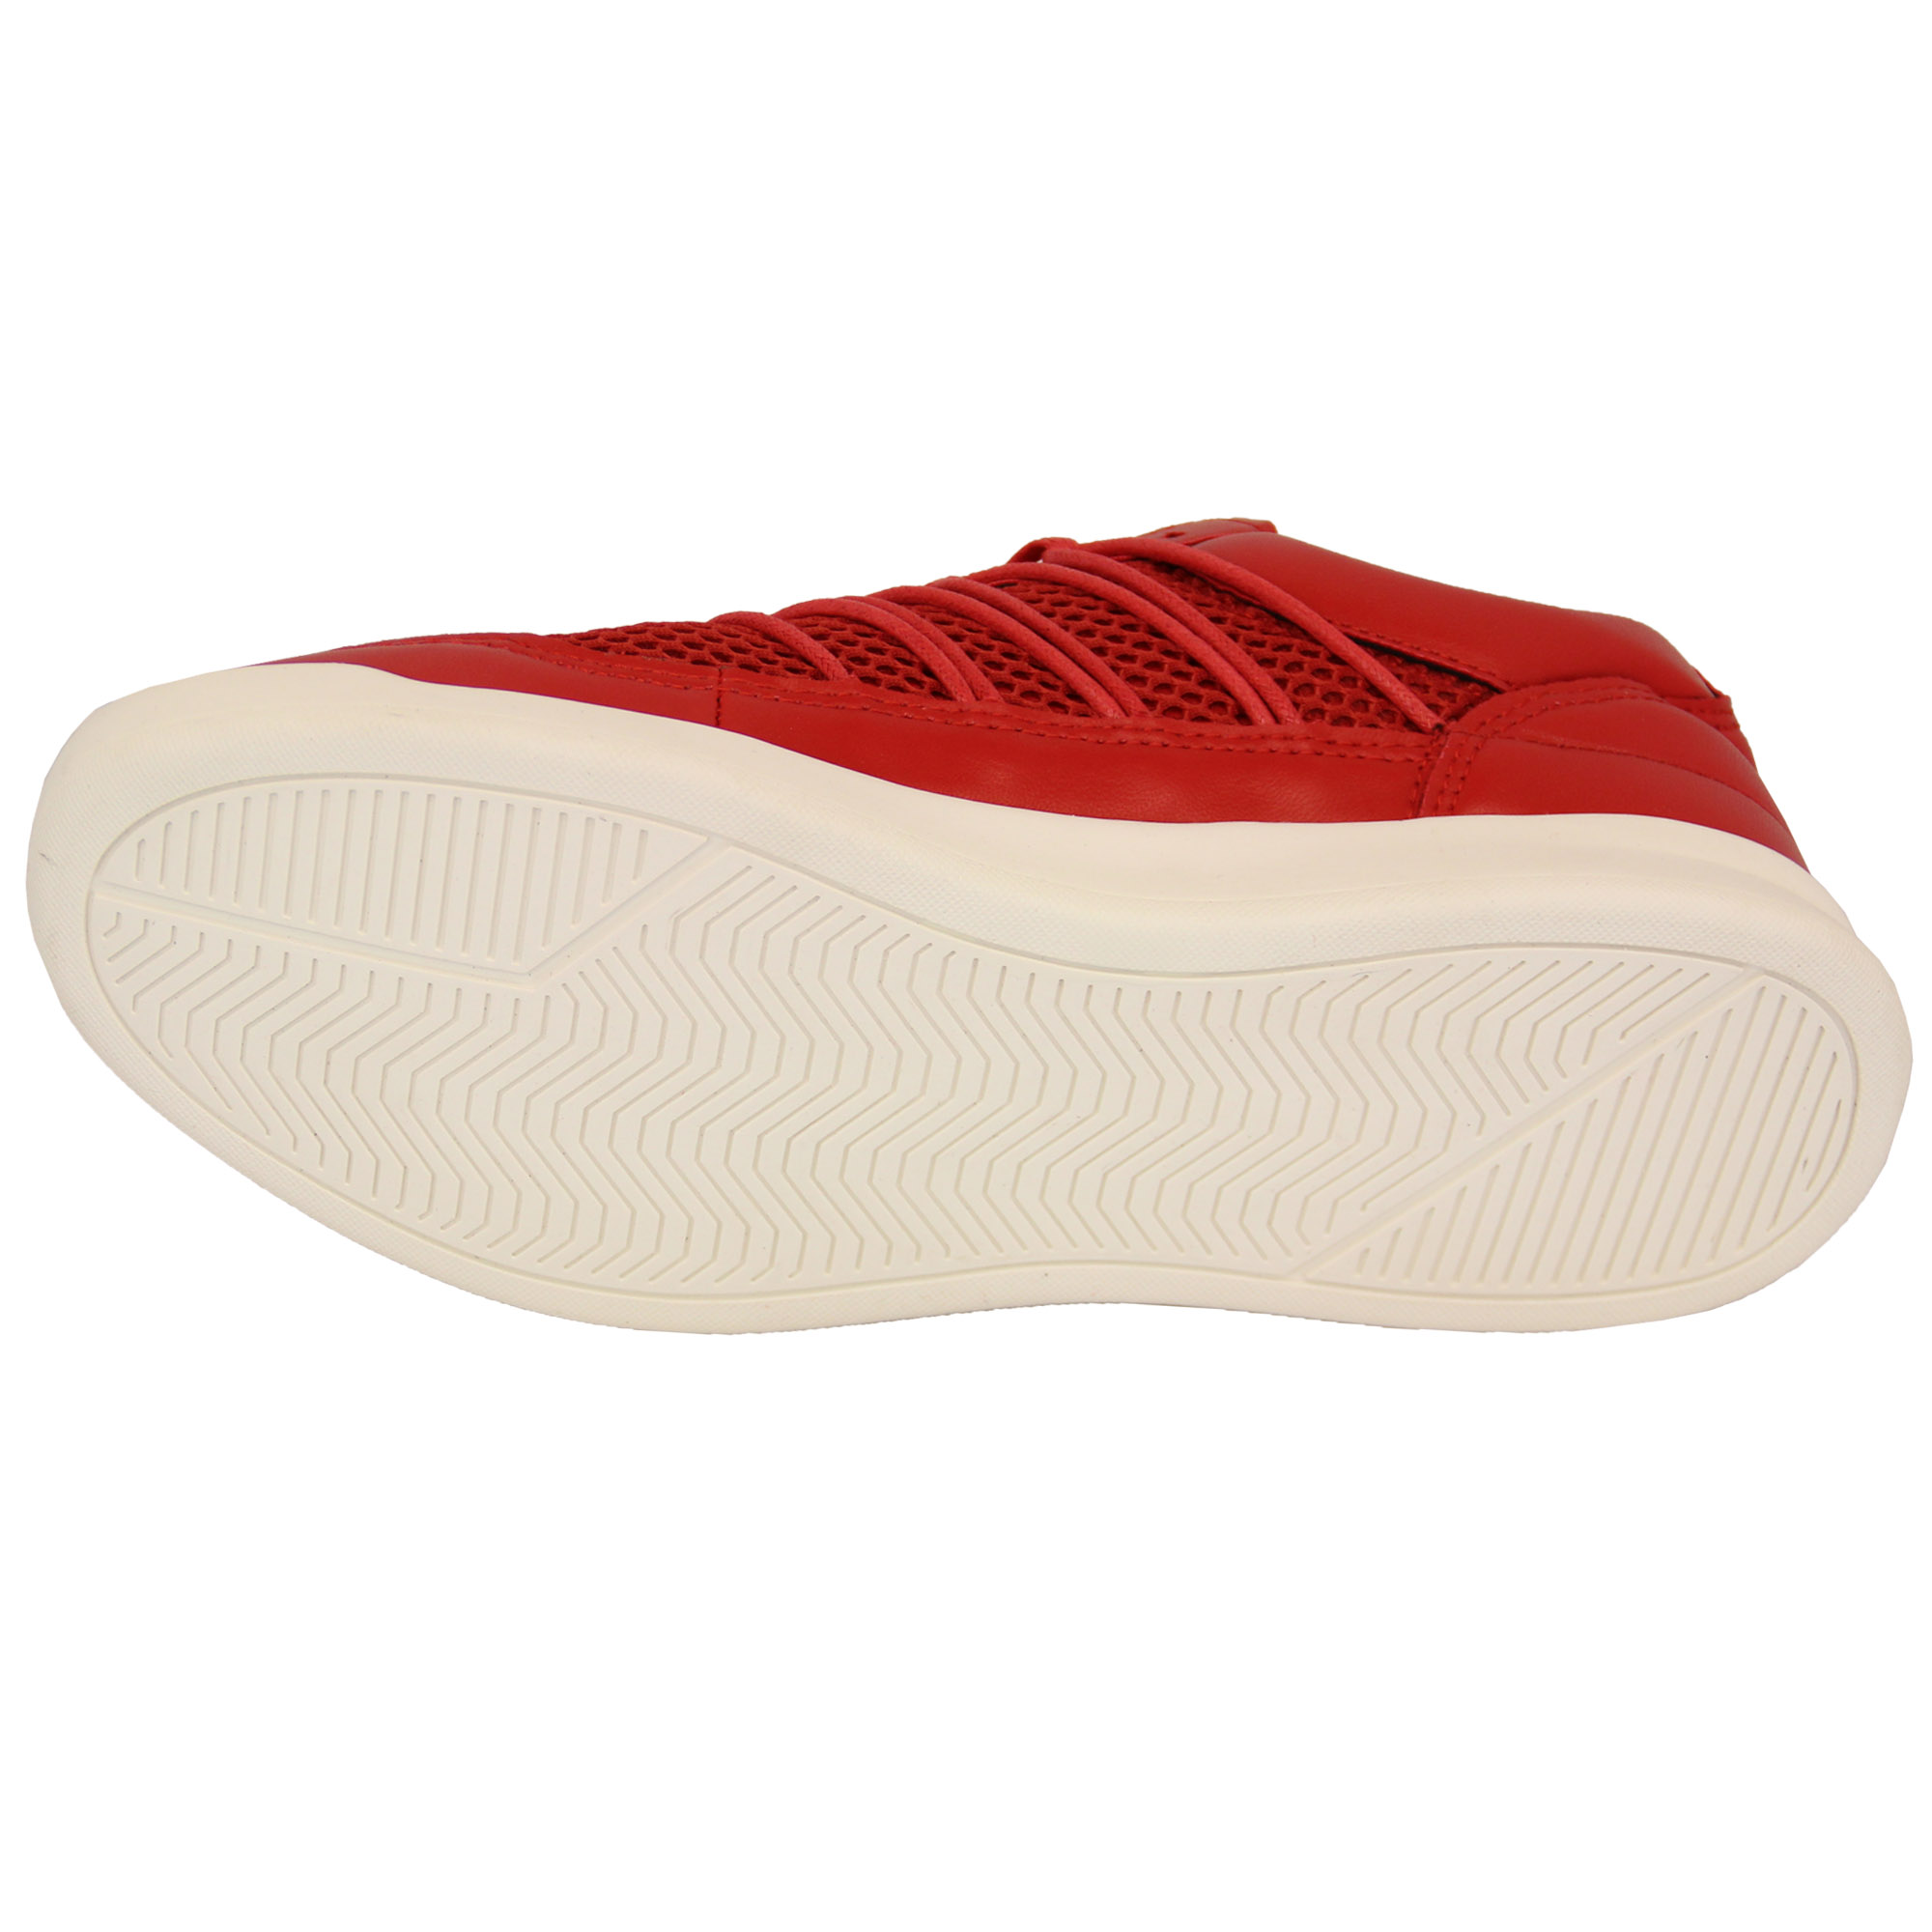 Mens-Trainers-Crosshatch-Jogging-Shoes-Lace-Up-Walking-Running-Sports-Gym-Mesh thumbnail 7